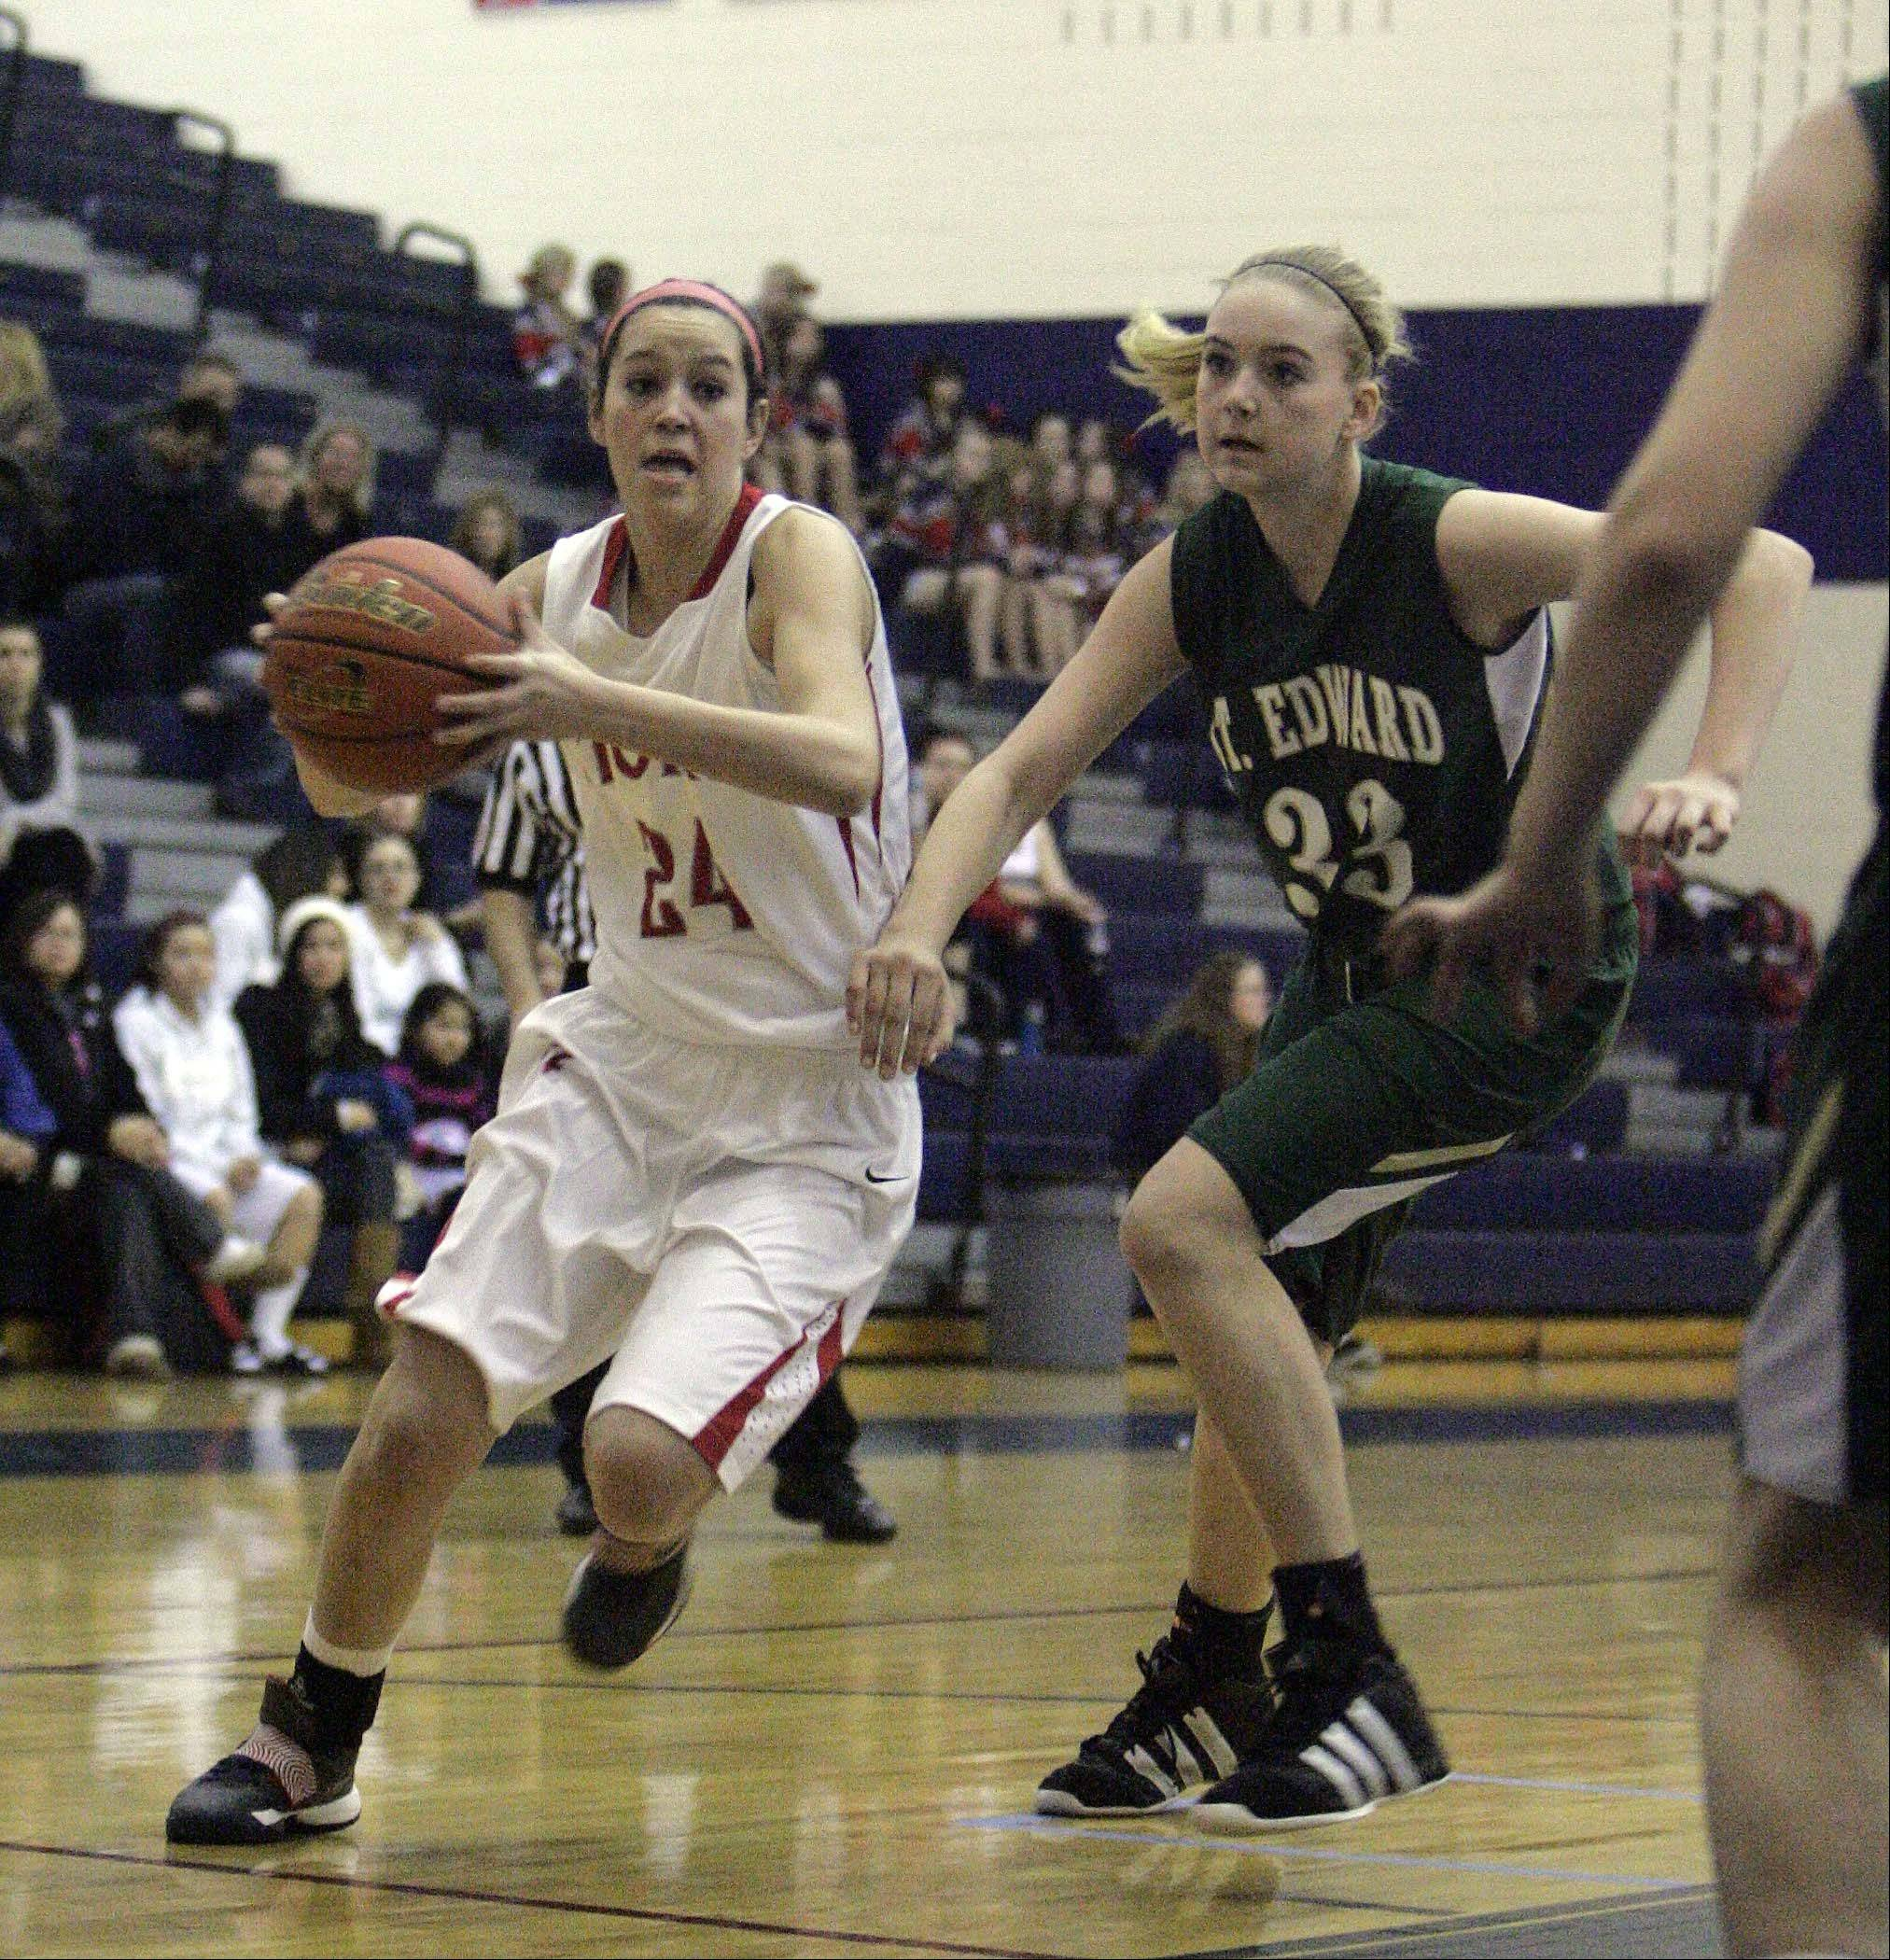 Images from the St. Edward vs. South Elgin girls basketball game Saturday, January 5, 2012.